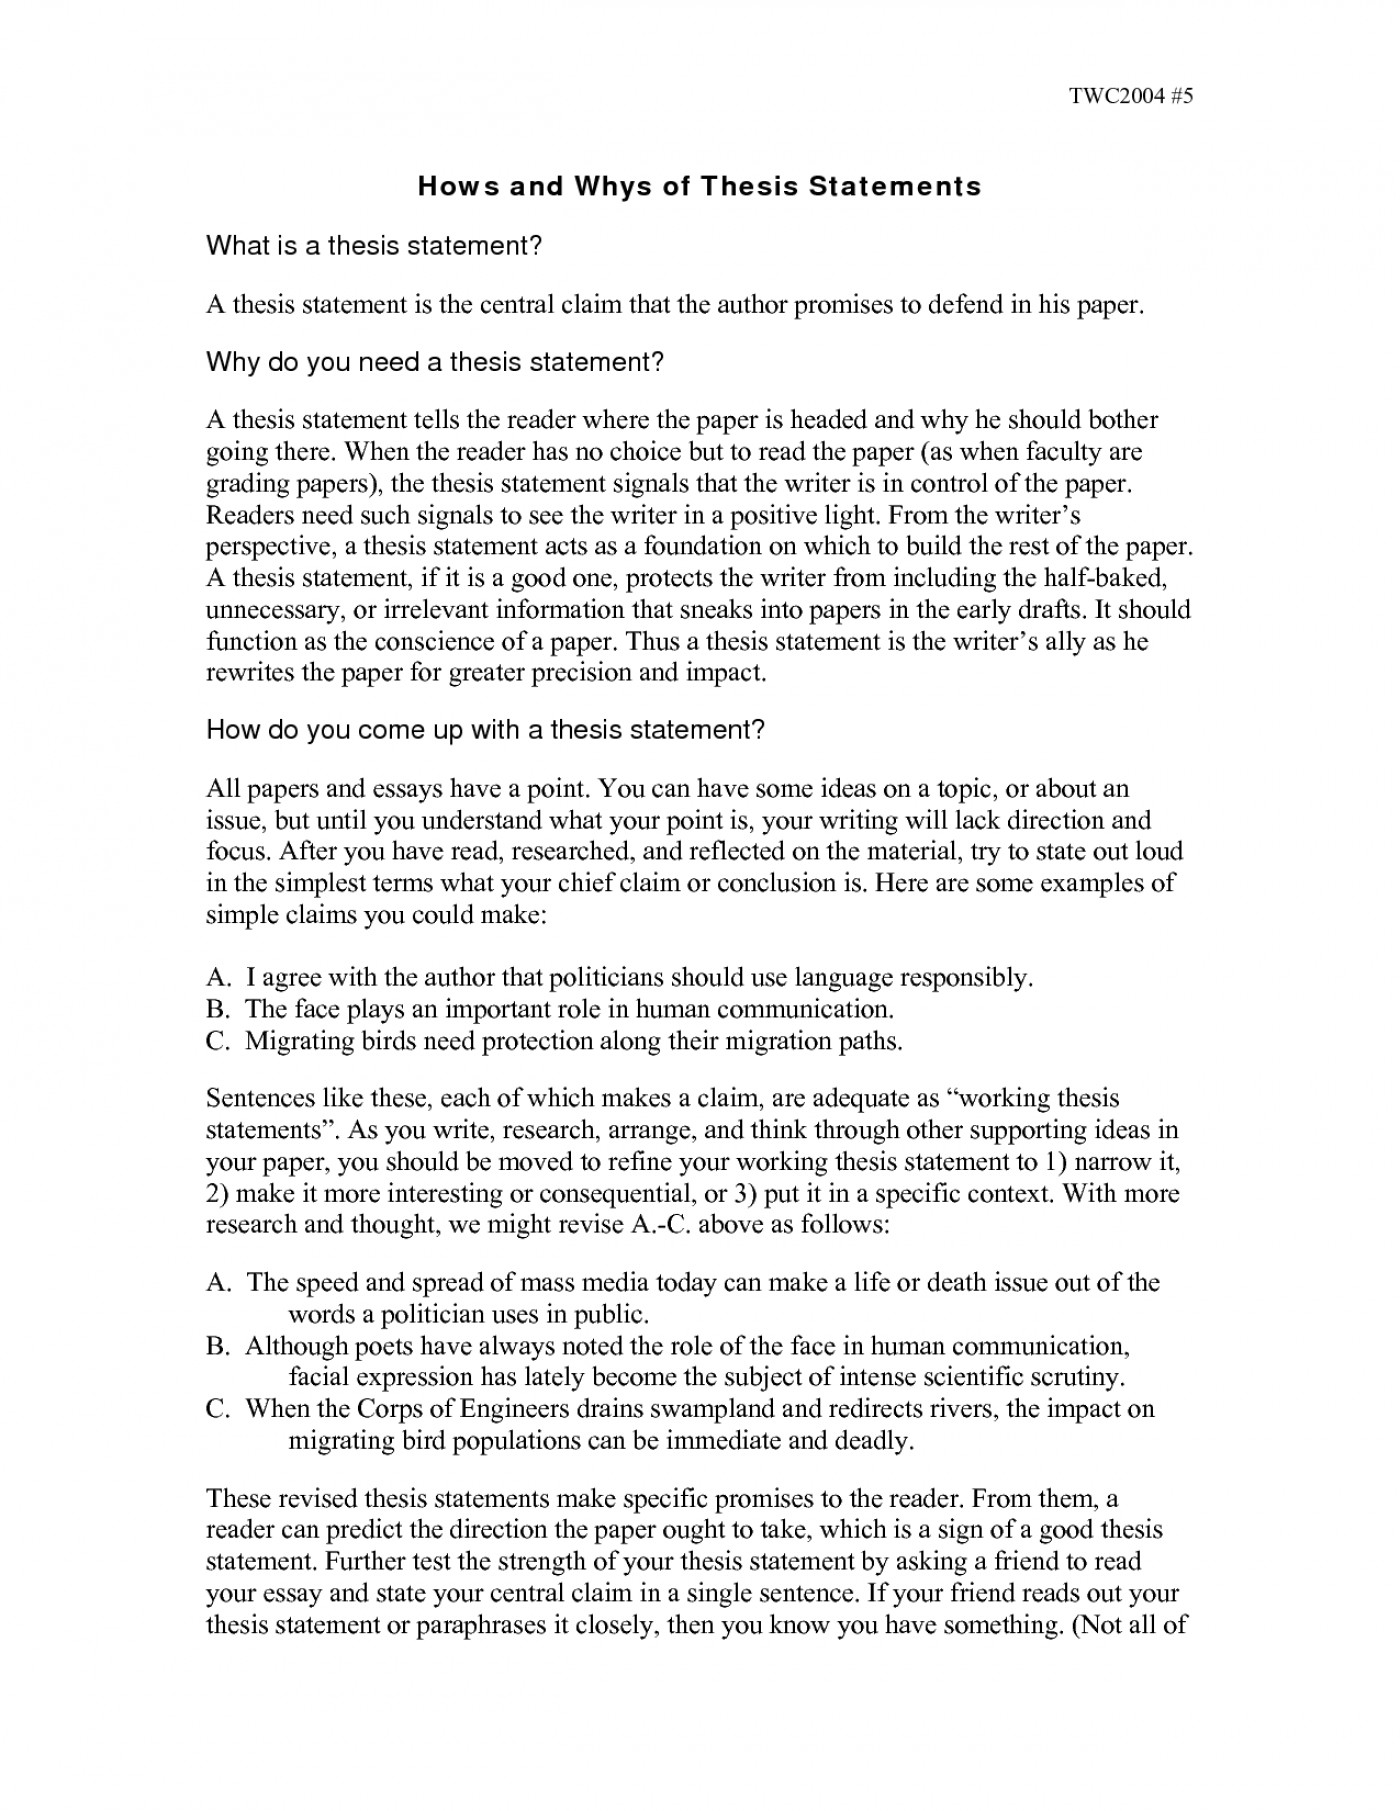 003 Unique Research Paper Ideas Imposing Science For High School Biology 1400